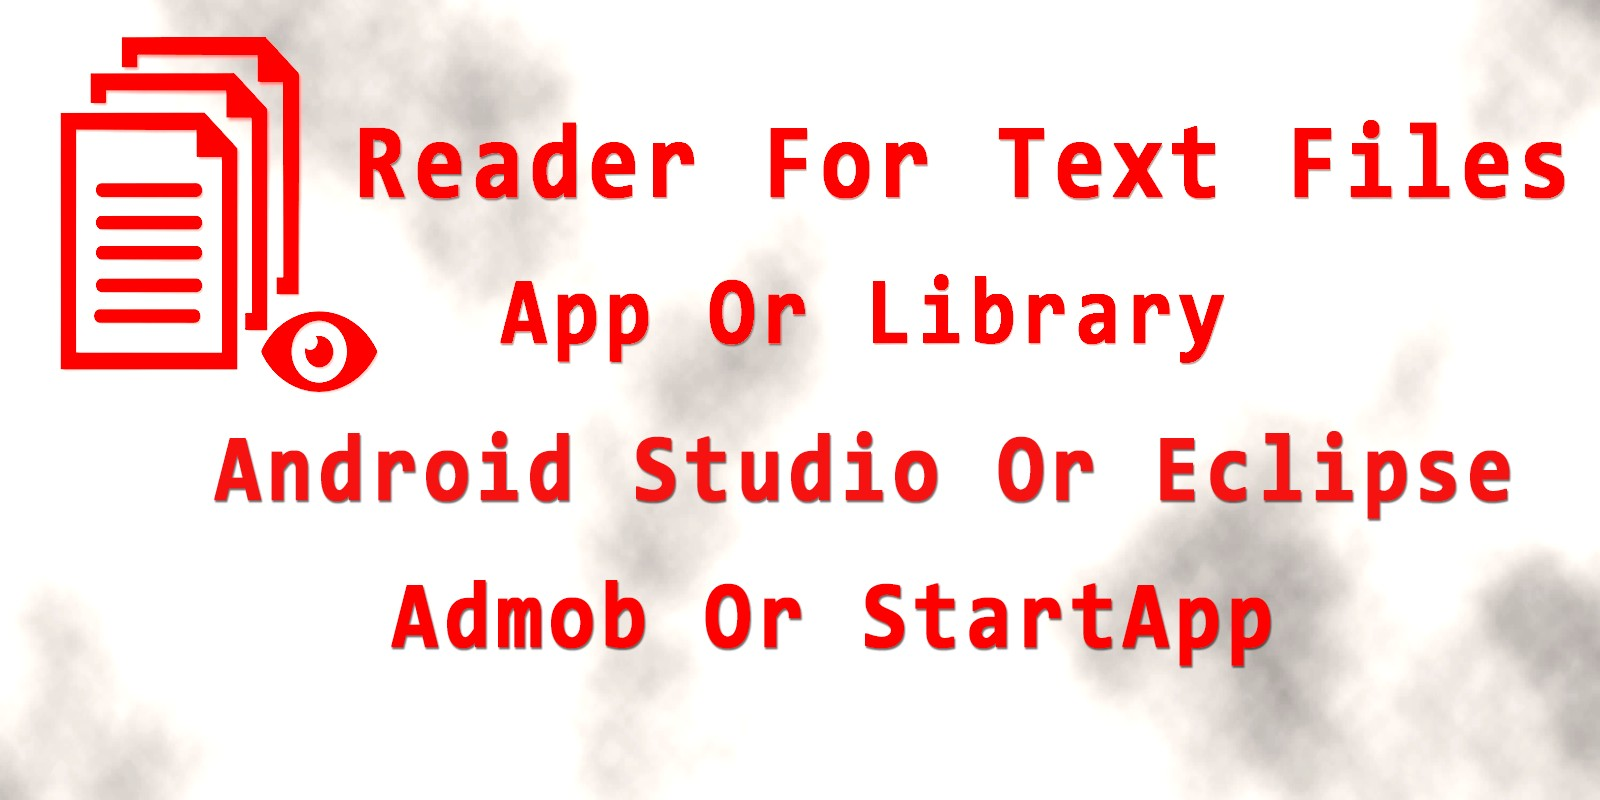 Reader For Text Files - Android App Source Code